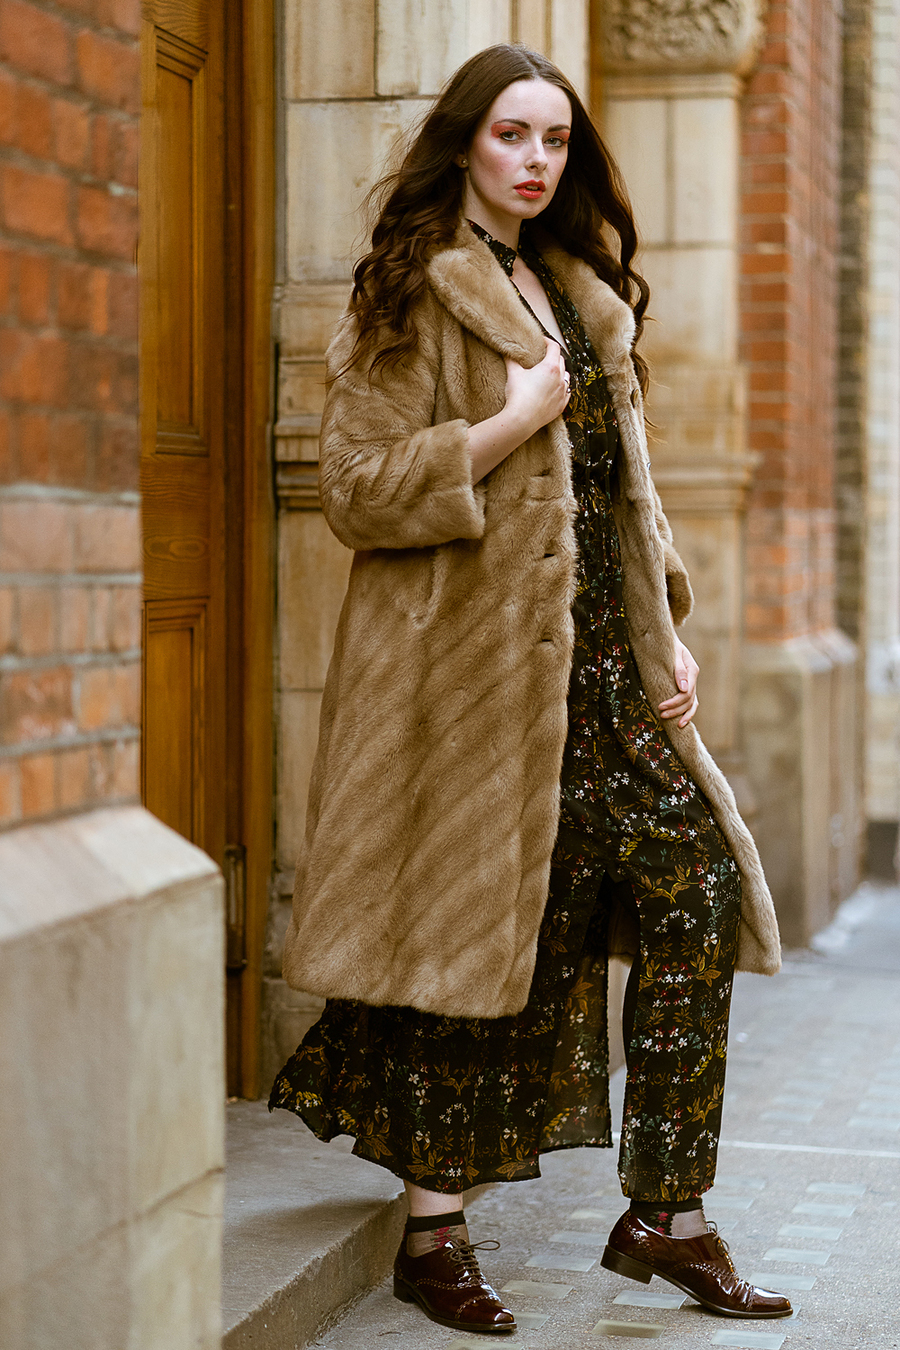 Autumn Fashion / Photography by Martin Higgs, Makeup by DaisyBrightMakeUp / Uploaded 2nd October 2018 @ 12:06 PM